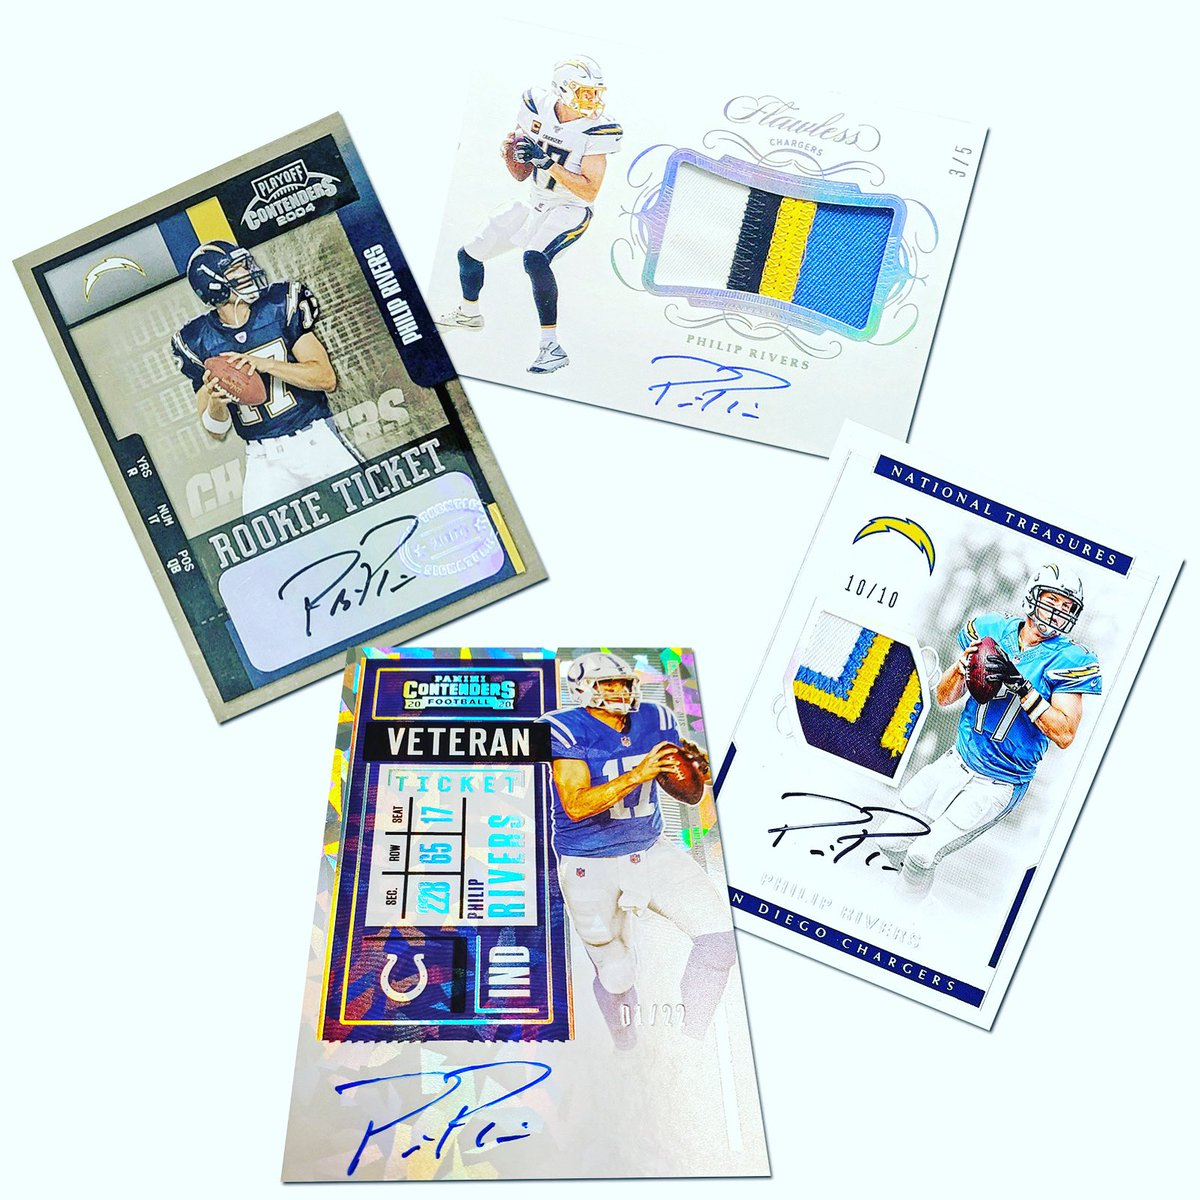 17 seasons. 63,440 passing yards. 421 touchdown passes. Too many memories to count. Congratulations, Philip Rivers, on a spectacular @NFL career. Next stop: Canton.  #WhoDoYouCollect | #PhilipRivers #NFL